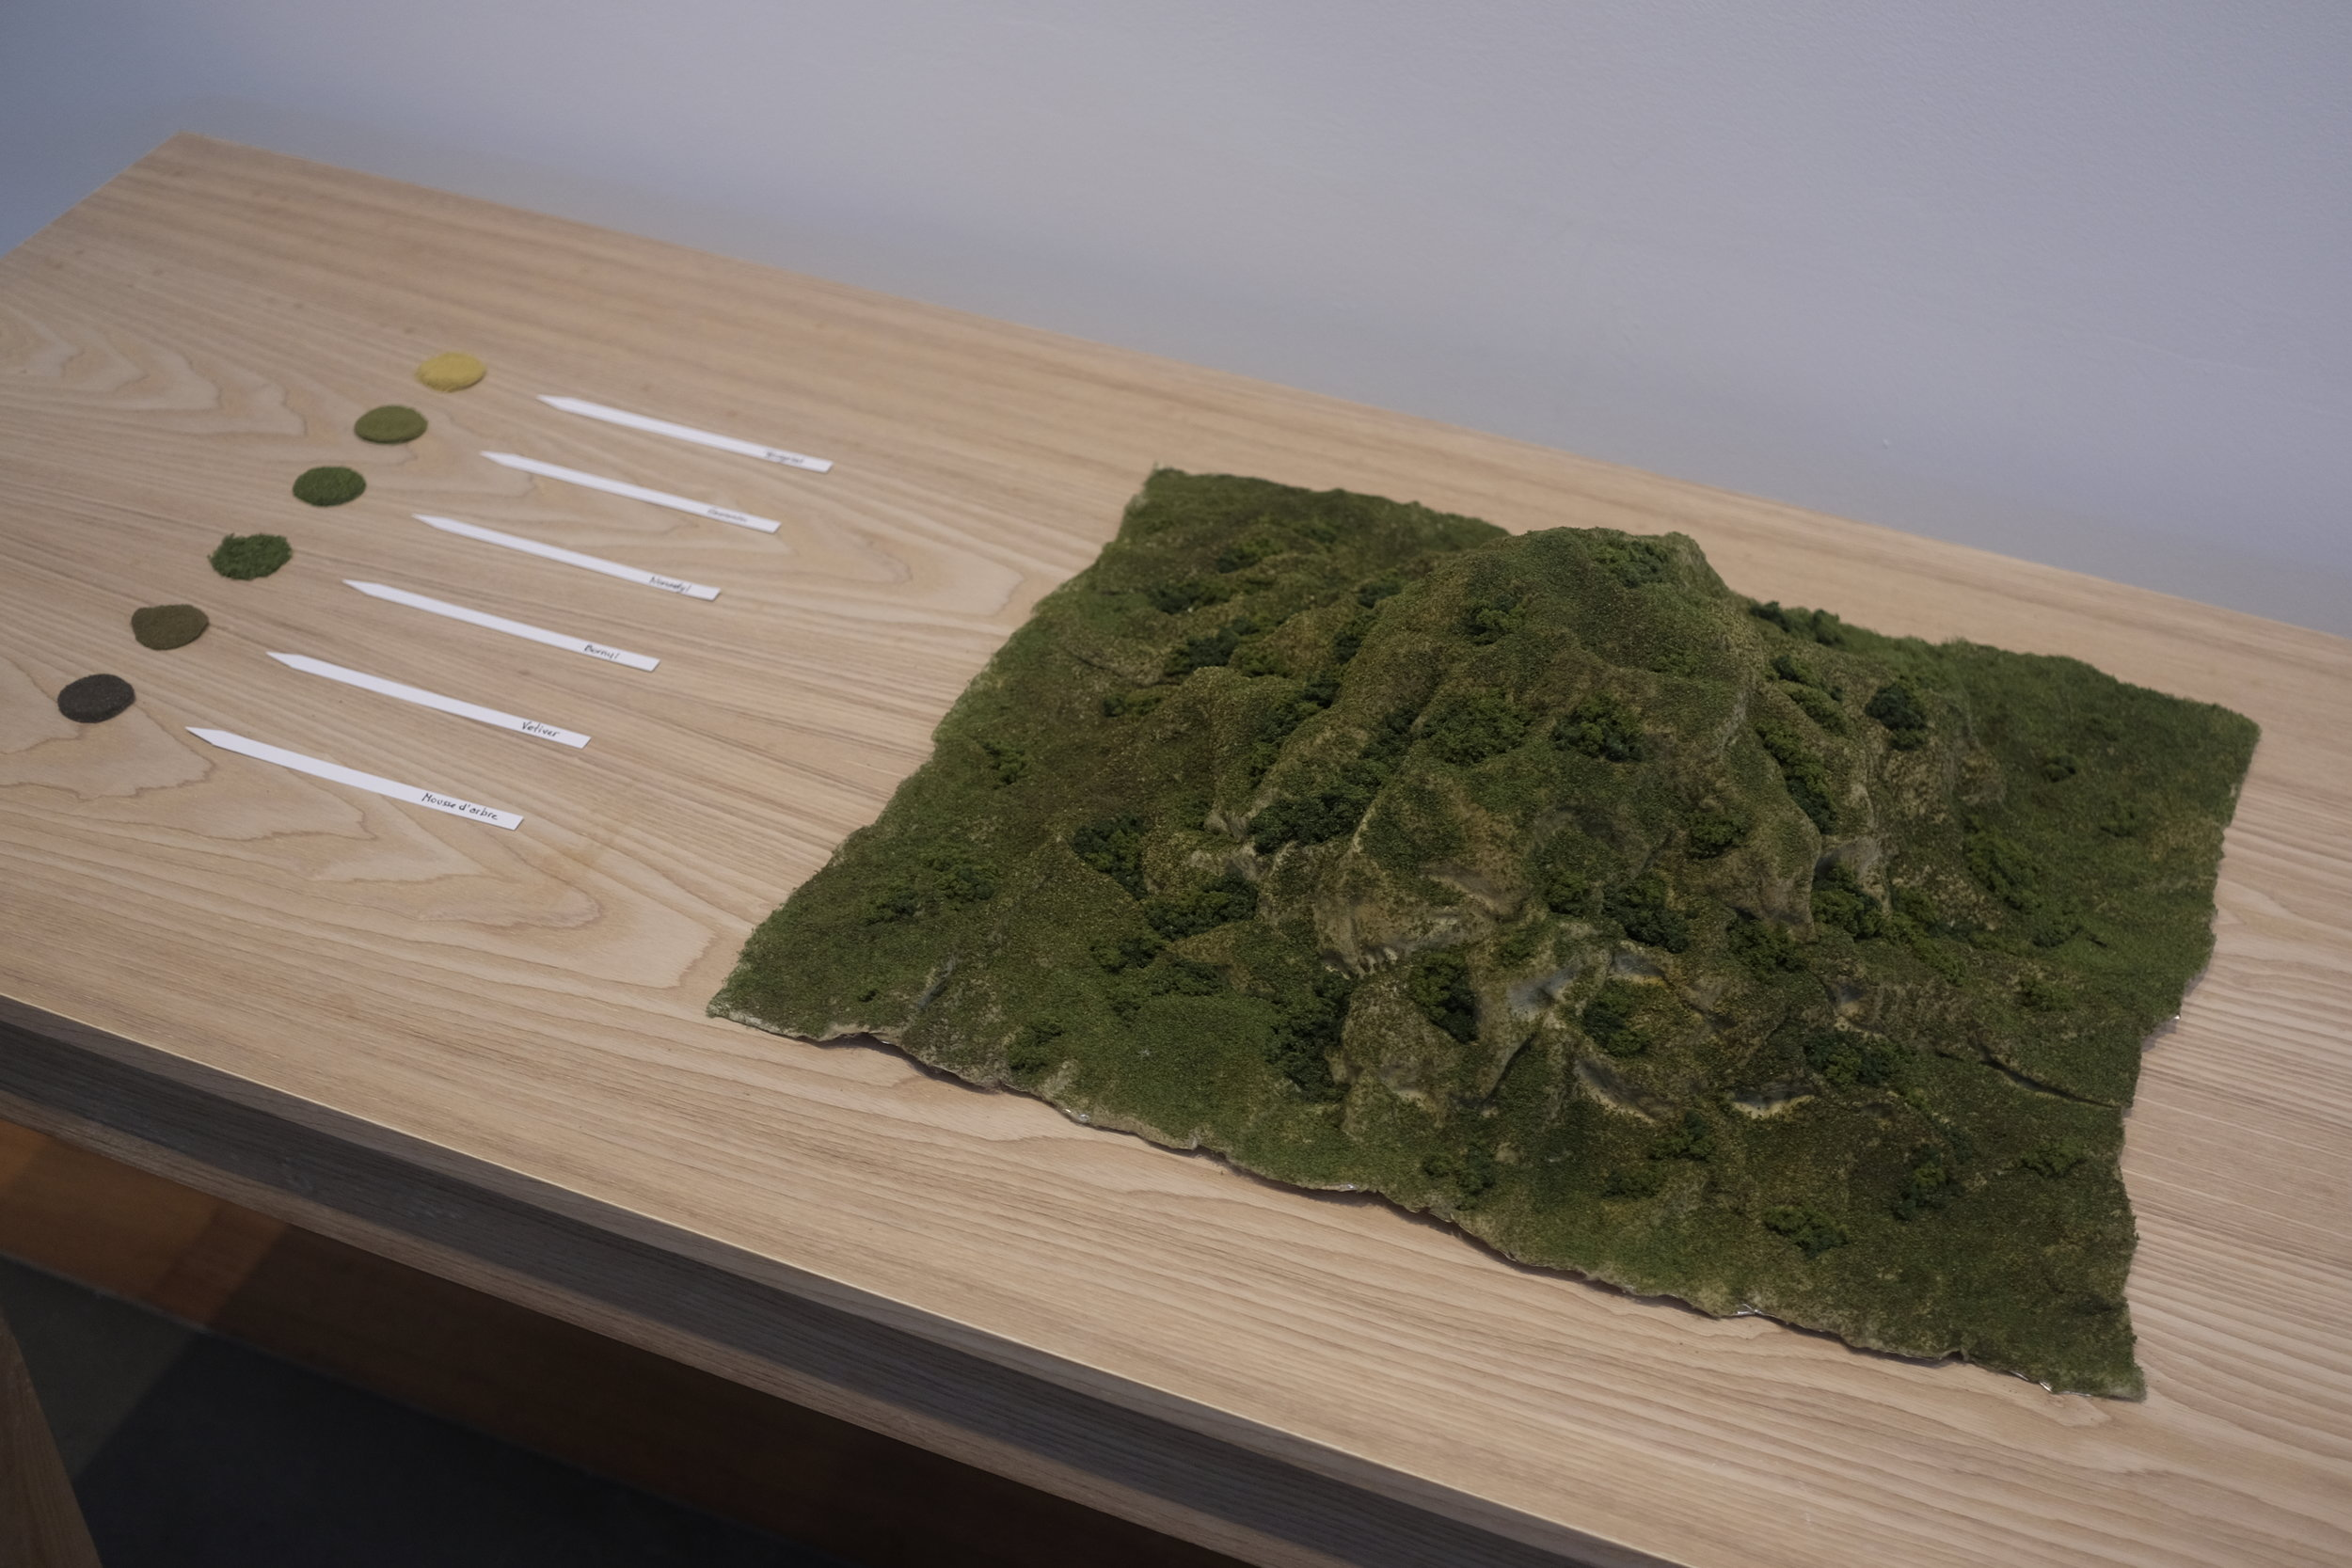 Maquette of the hill and layout of the different components of the scent